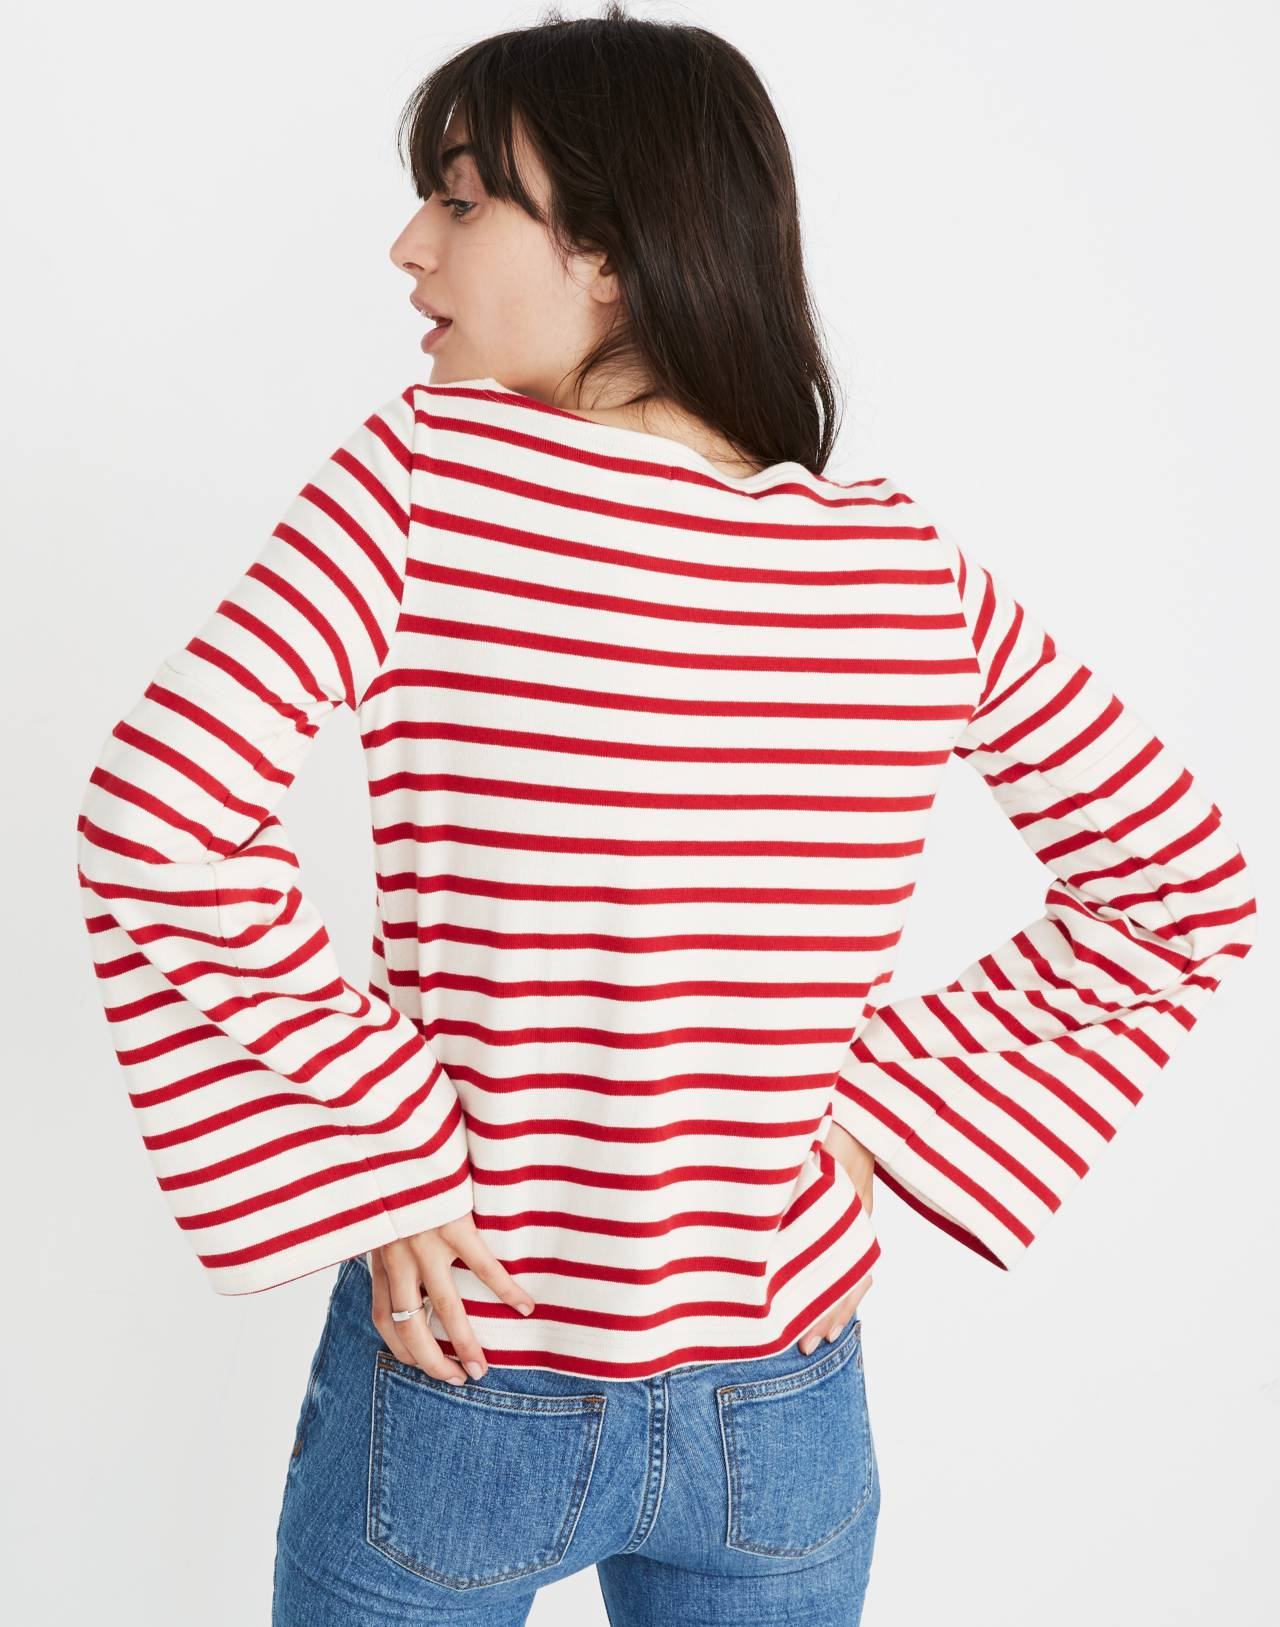 Madewell x Armor-Lux® Flare-Sleeve Striped Top in red creme stripe image 2